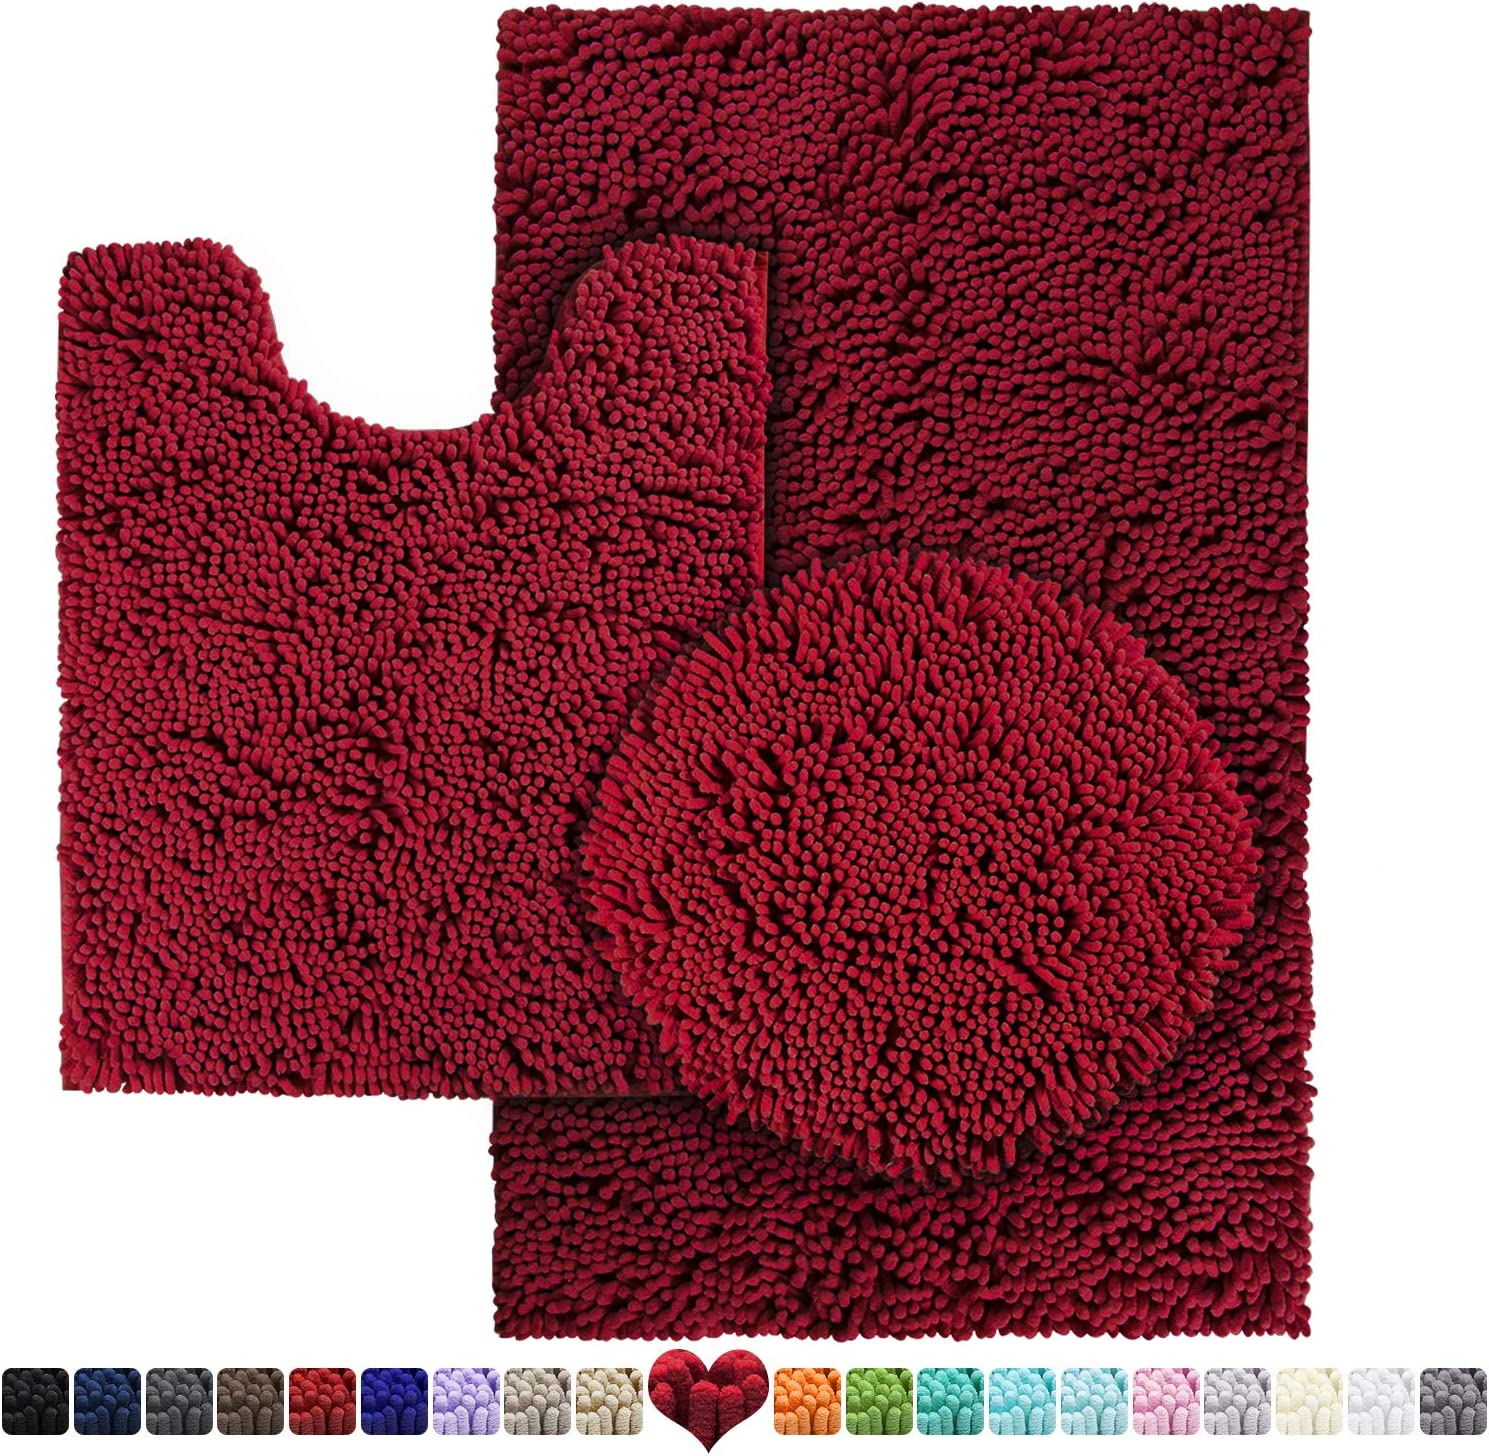 HOMEIDEAS 3 Pieces Bathroom Rugs Set Burgundy, Includes U-Shaped Contour Toilet Mat, Bath Mat and Shaggy Toilet Lid Cover, Machine Washable & Non Slip Bath Rugs for Bathroom, Tub, Shower